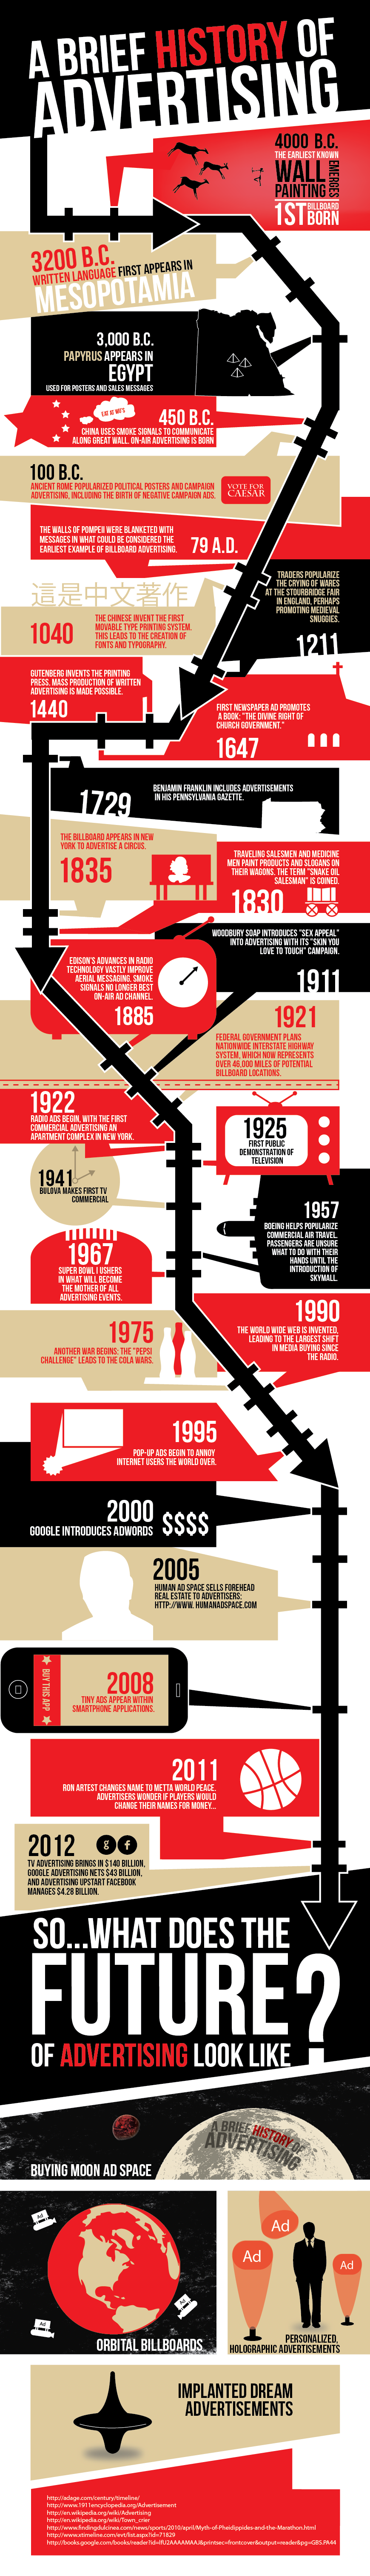 A Brief History of Advertising